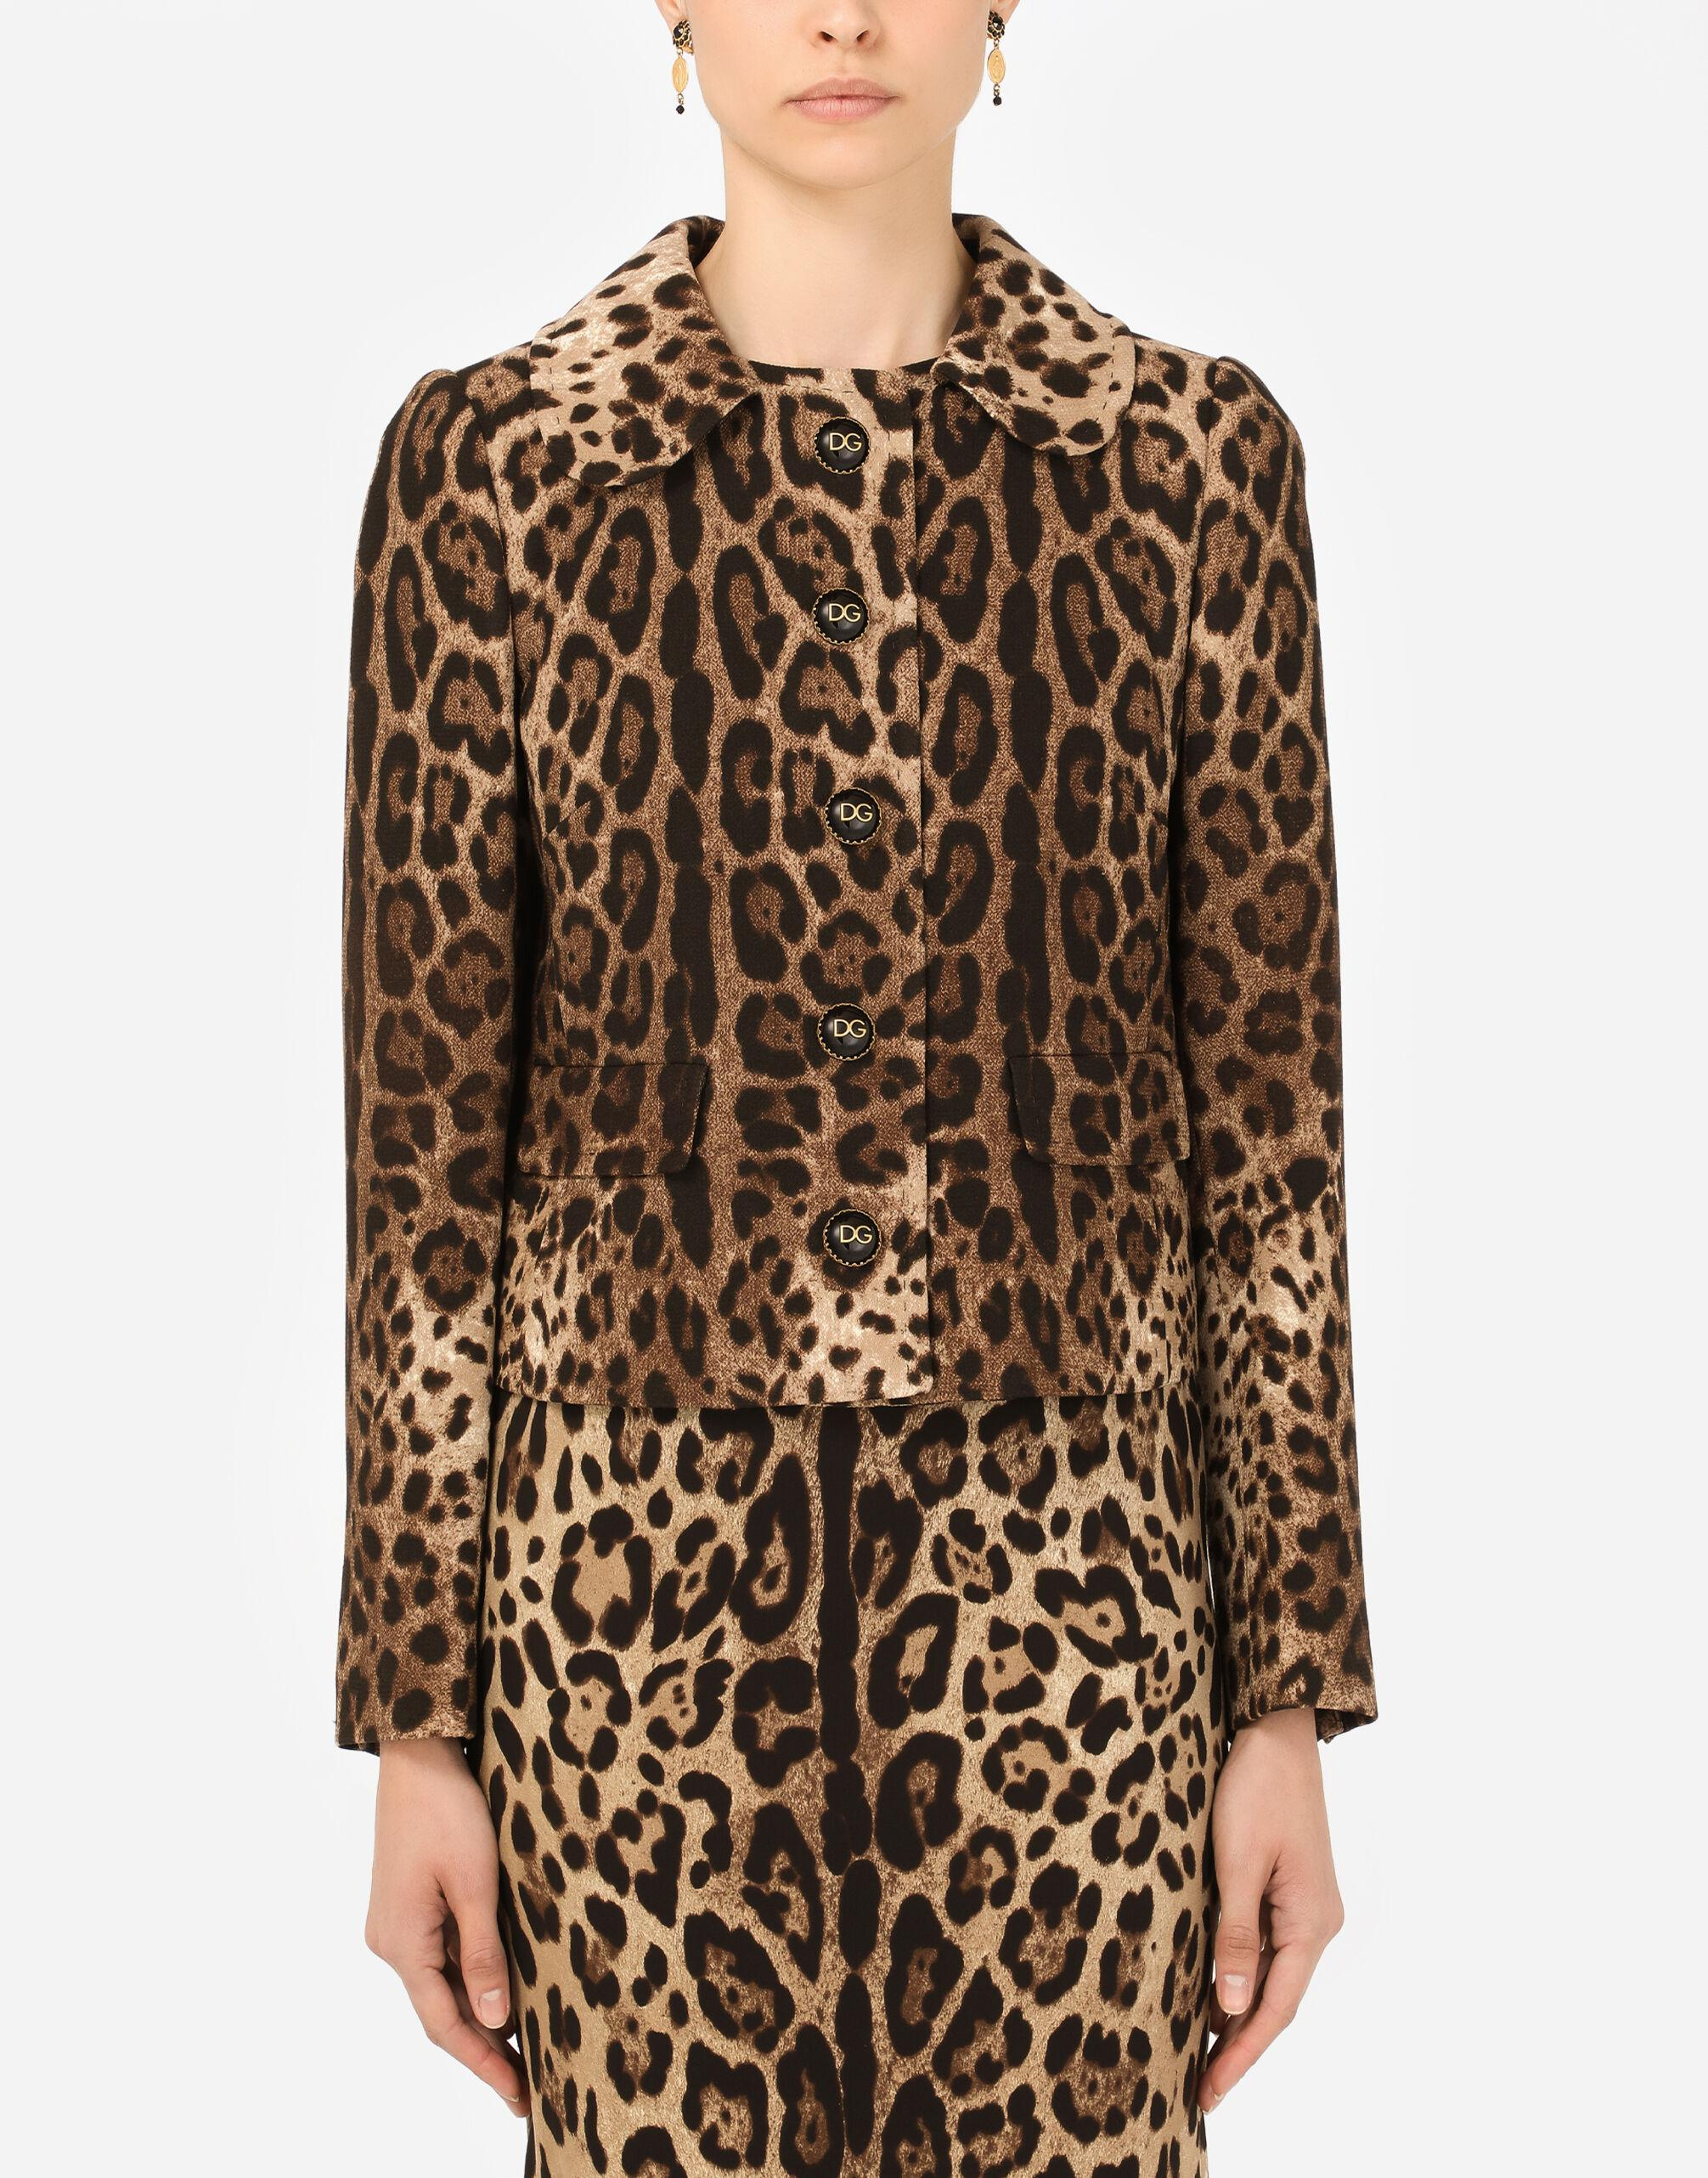 Wool Dolce jacket with leopard print